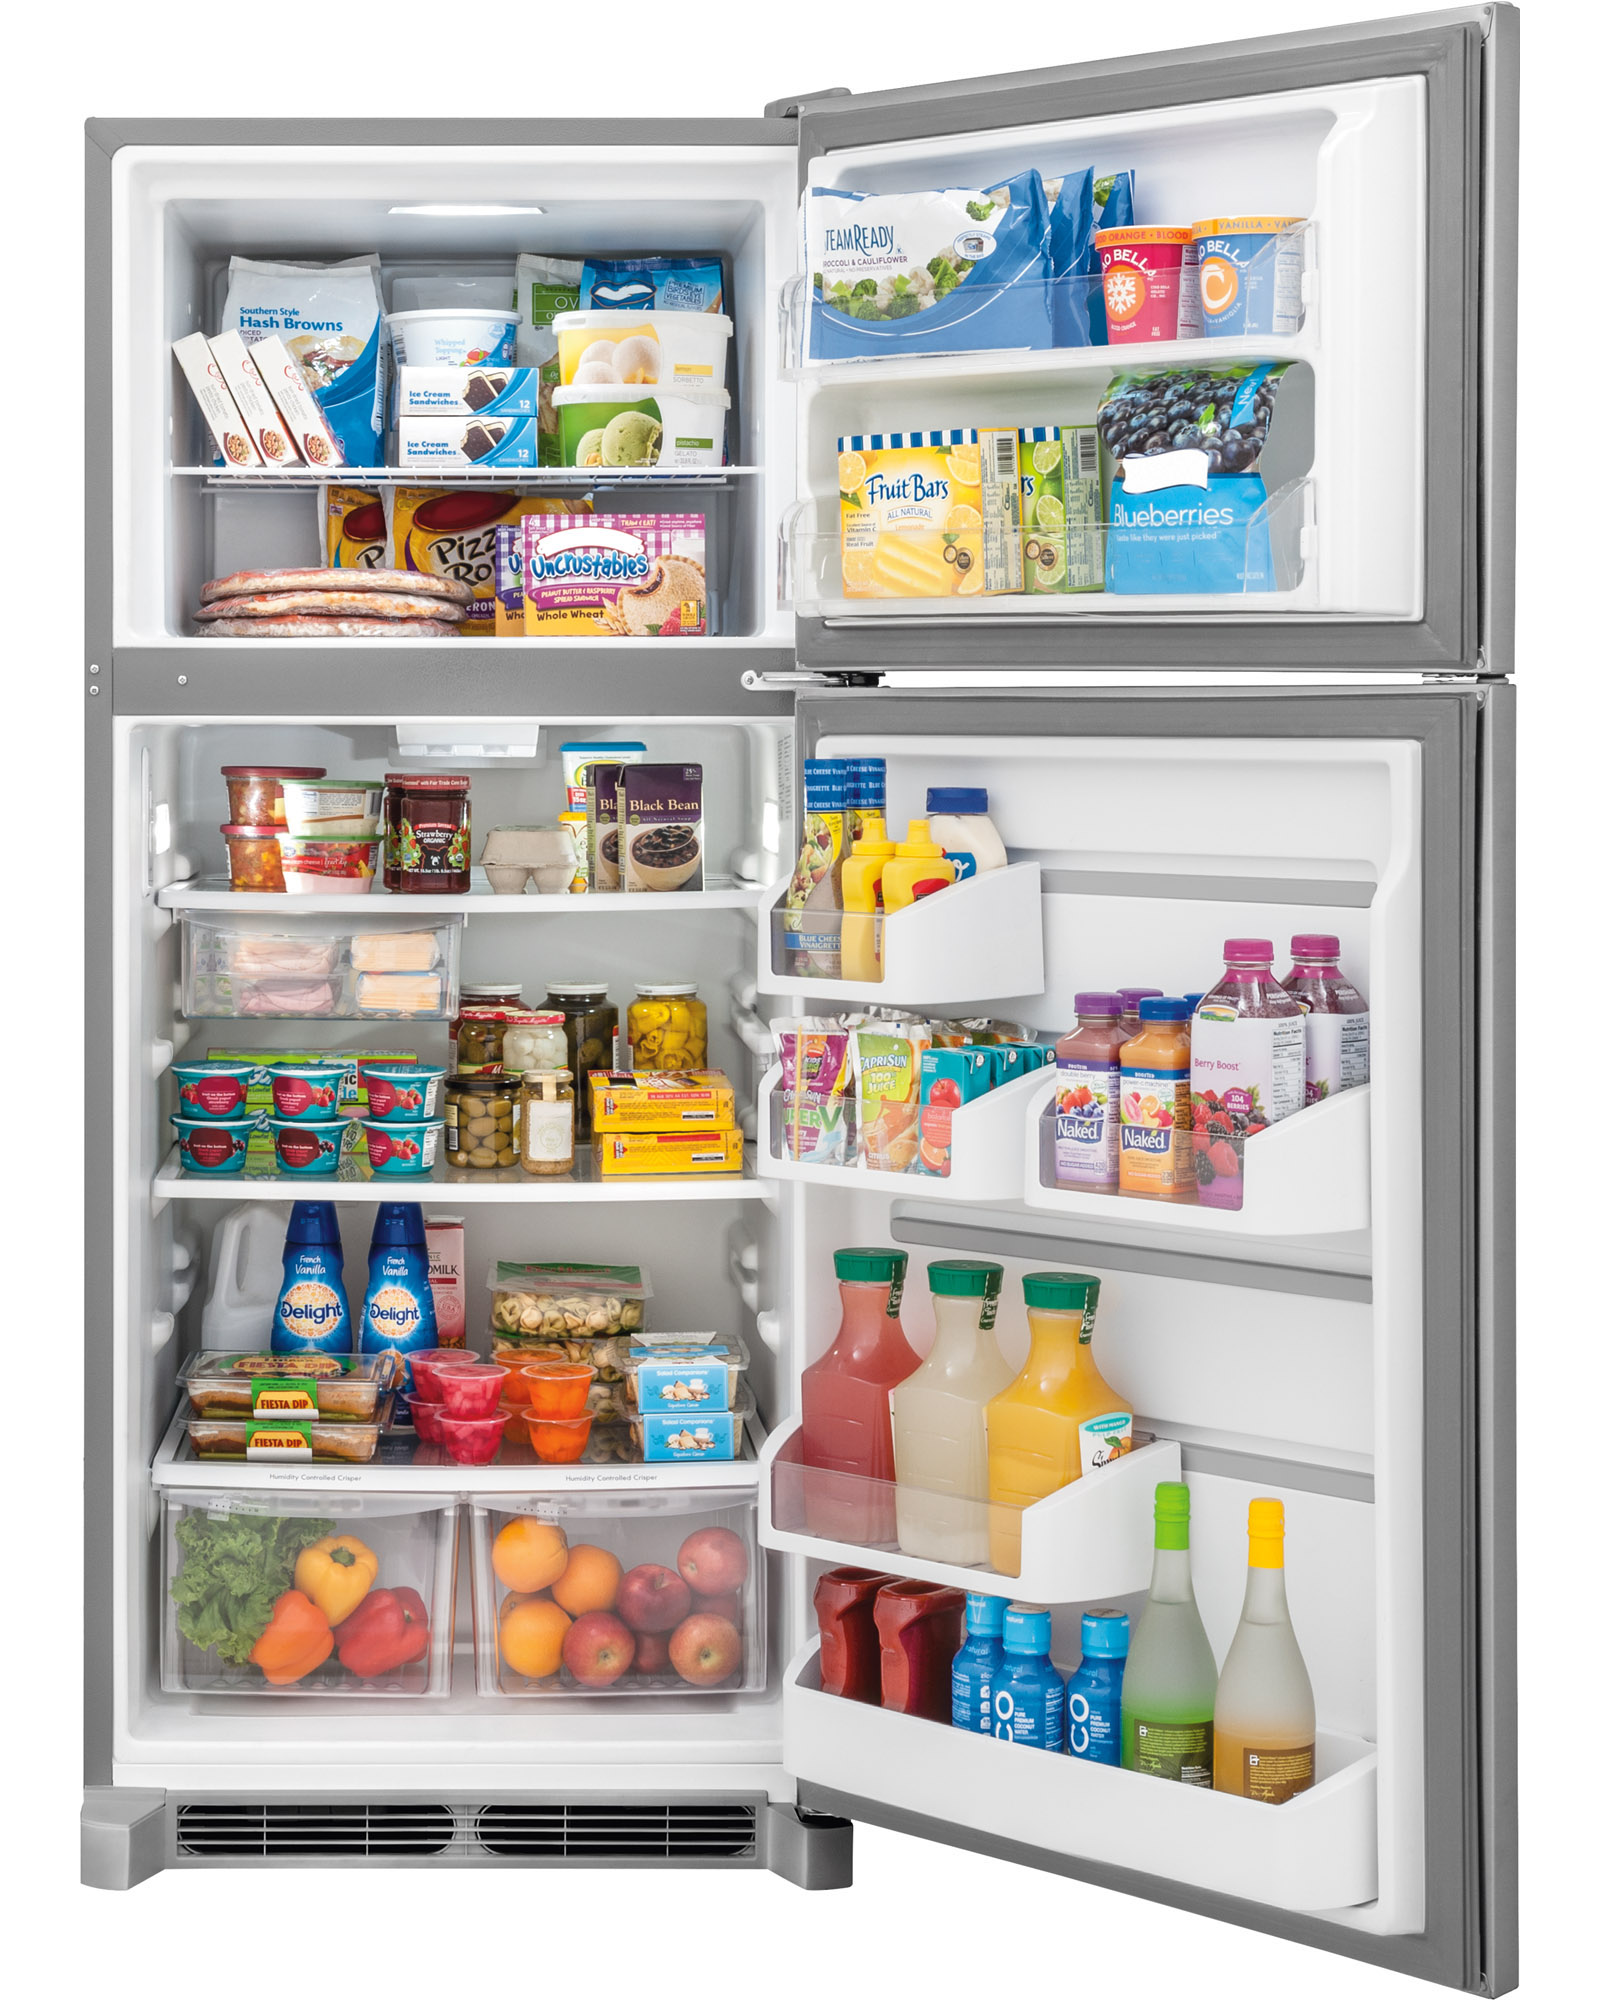 Frigidaire FGTR2045QF 20.4 cu. ft. Top Mount Refrigerator - Stainless Steel